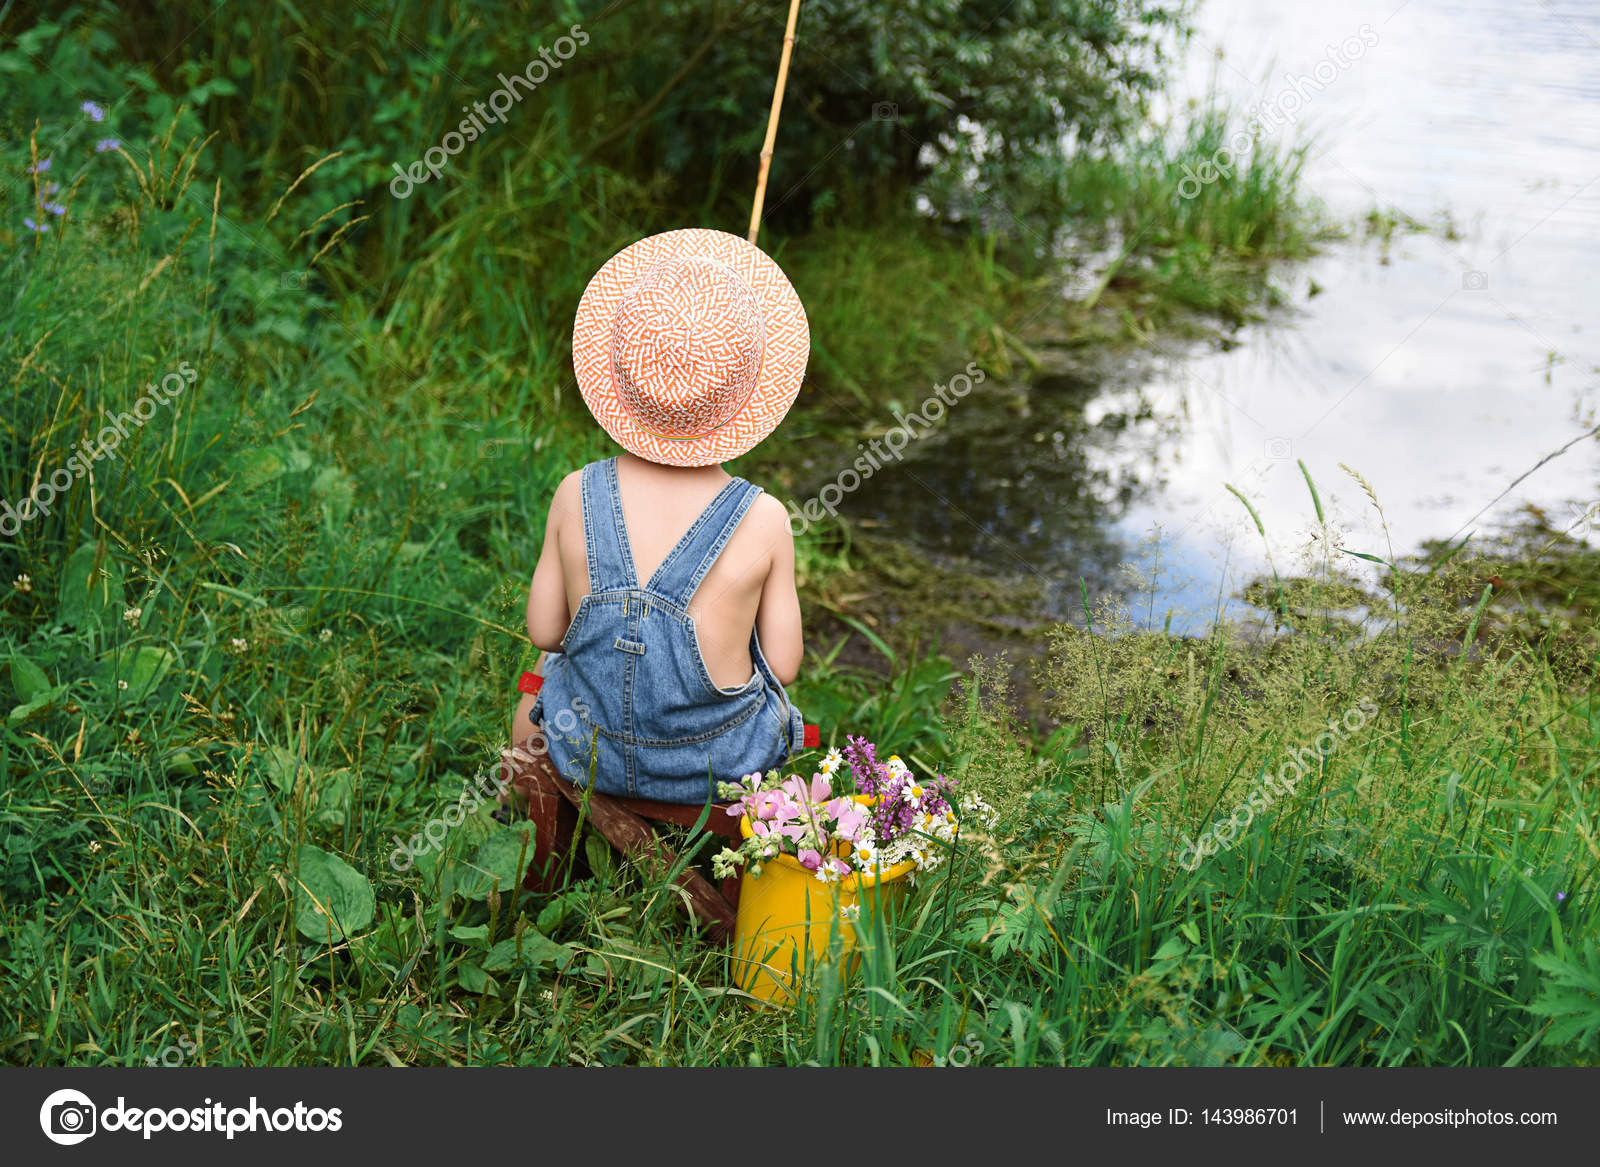 03df74378a2cb Pictures: baby fishing | Baby boy fisherman with a fishing rod in ...